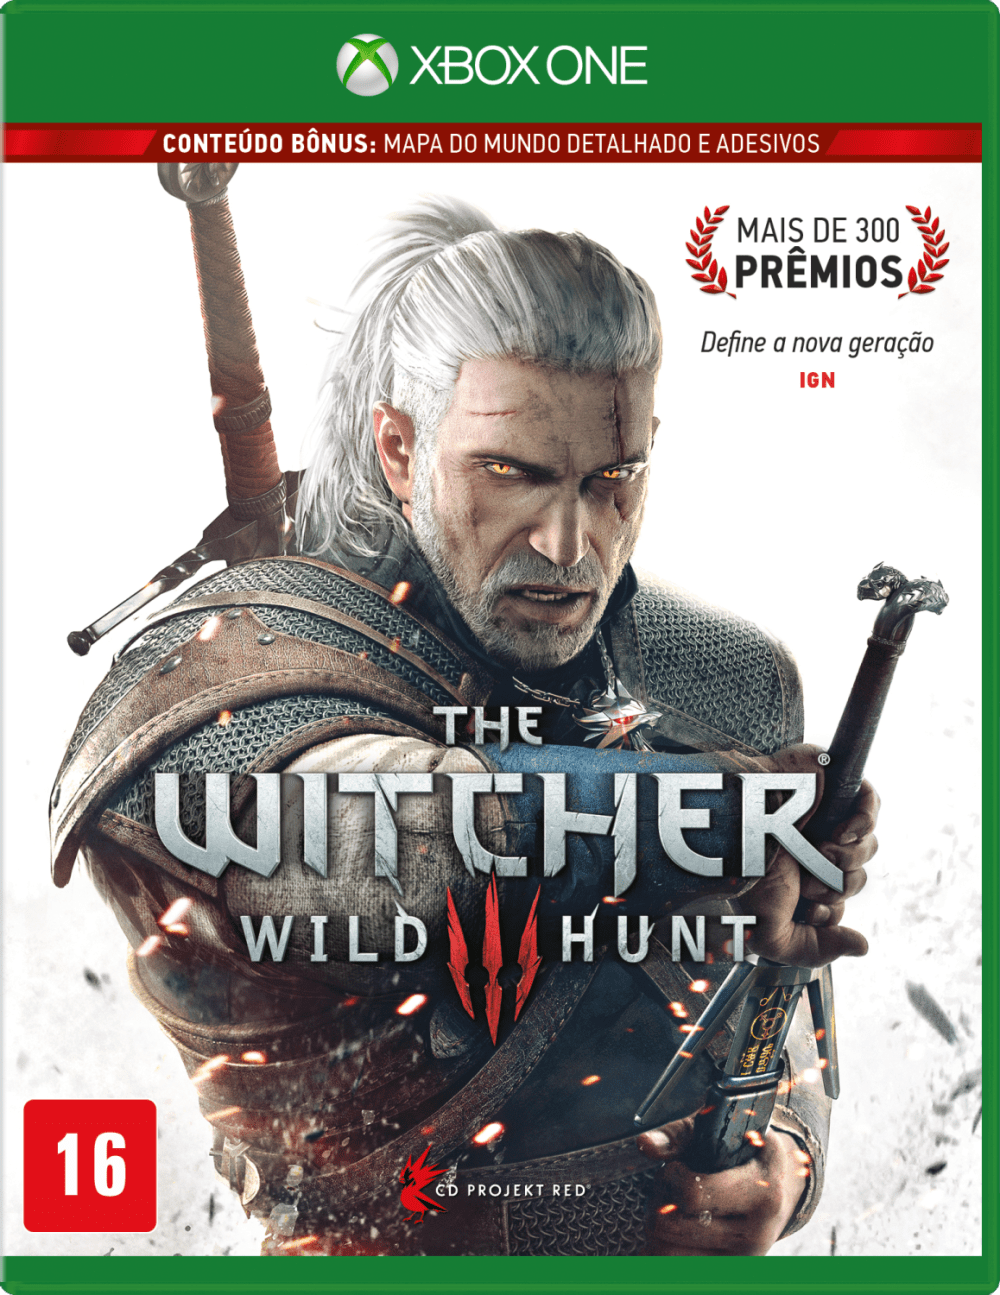 The Witcher 3 Wild Hunt Xone Saraiva Saraiva